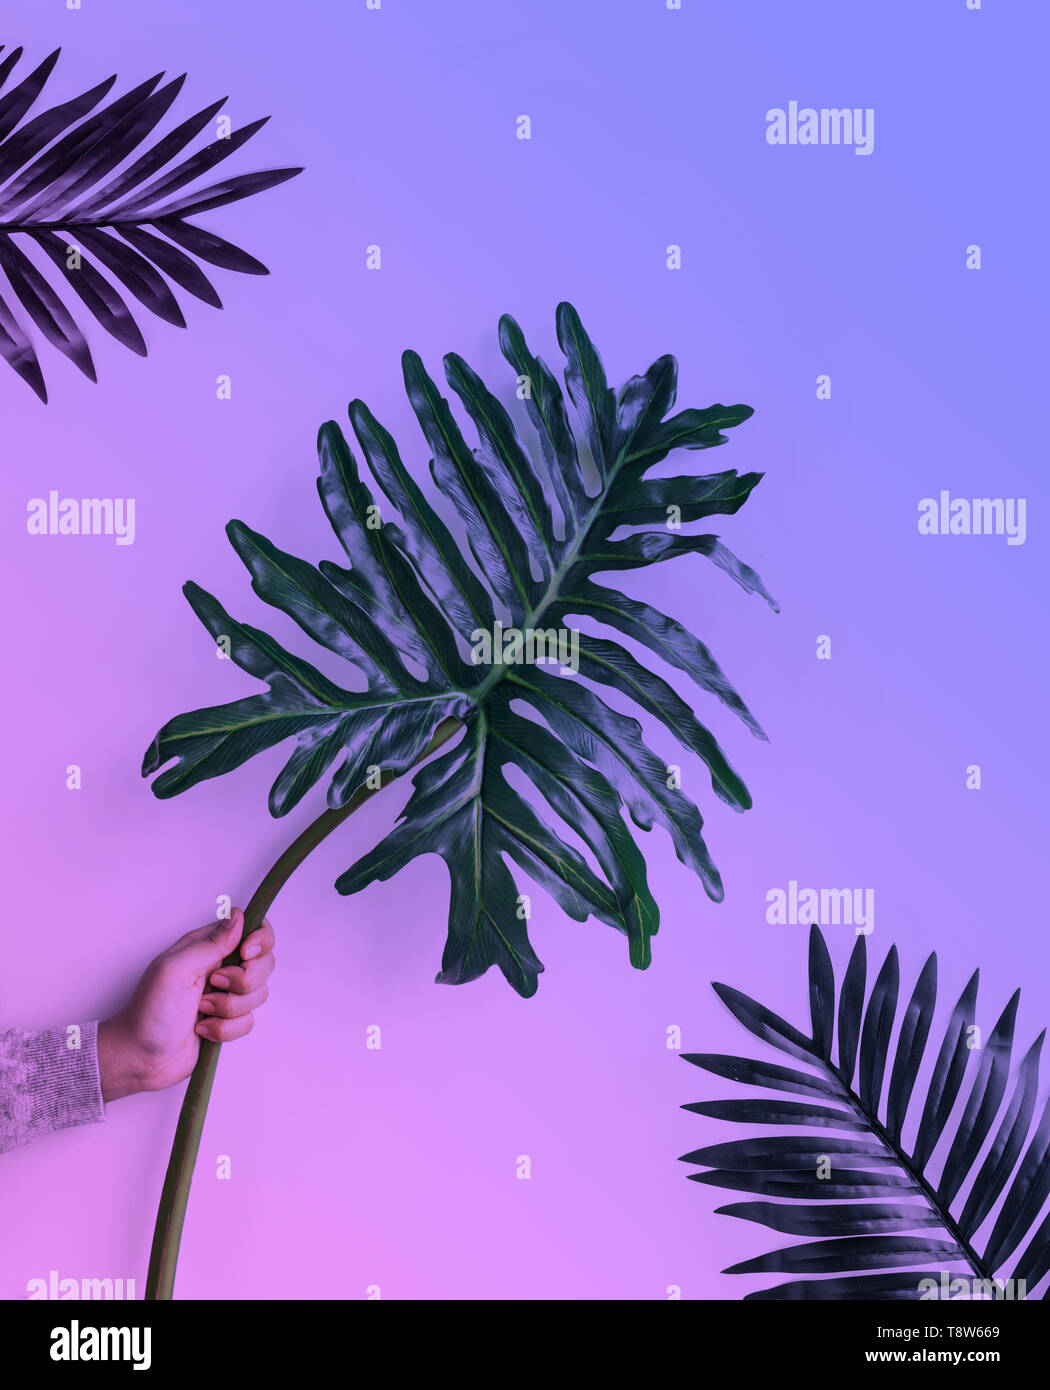 Female holding monstera leaf on in gradient neon background. - Stock Image